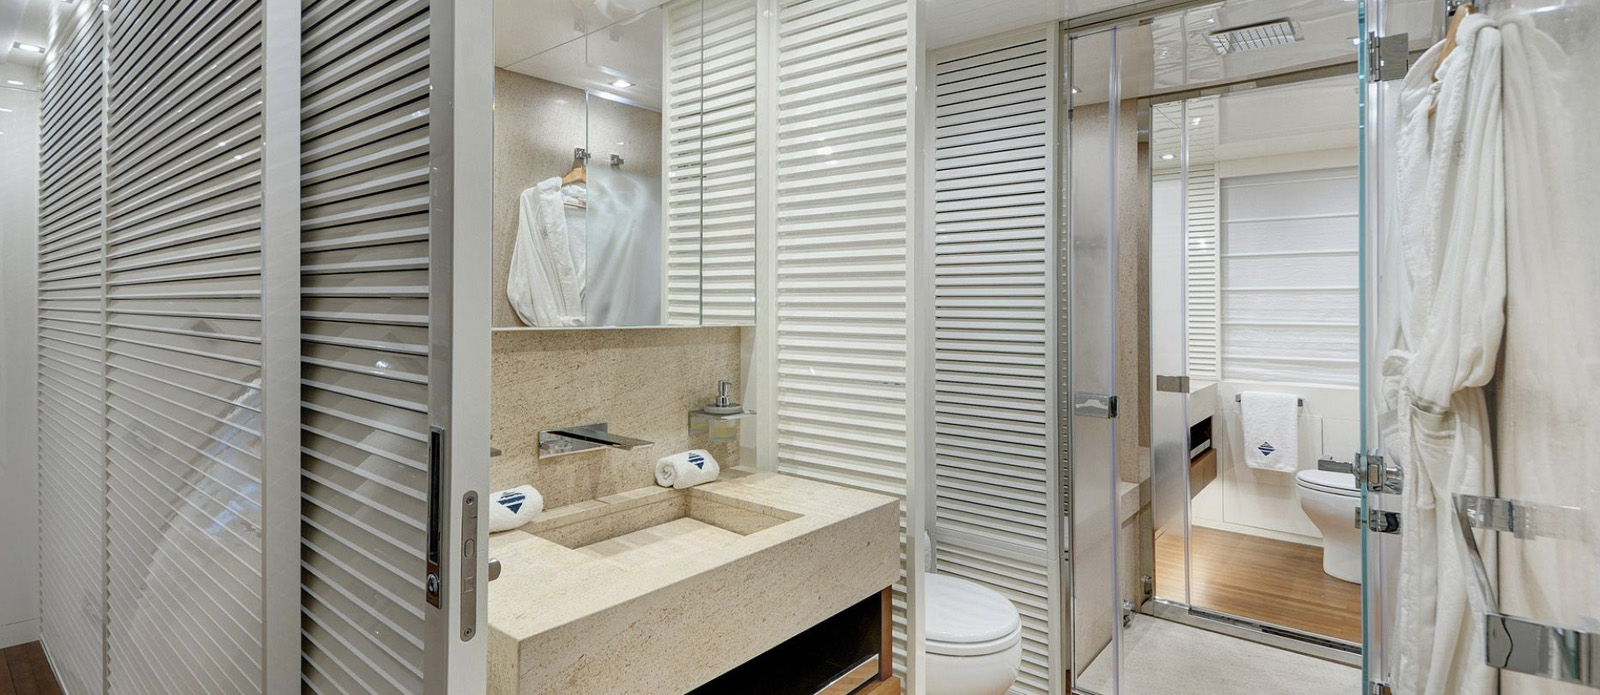 Morning-Star-San-Lorenzo-Master-Ensuite- copy